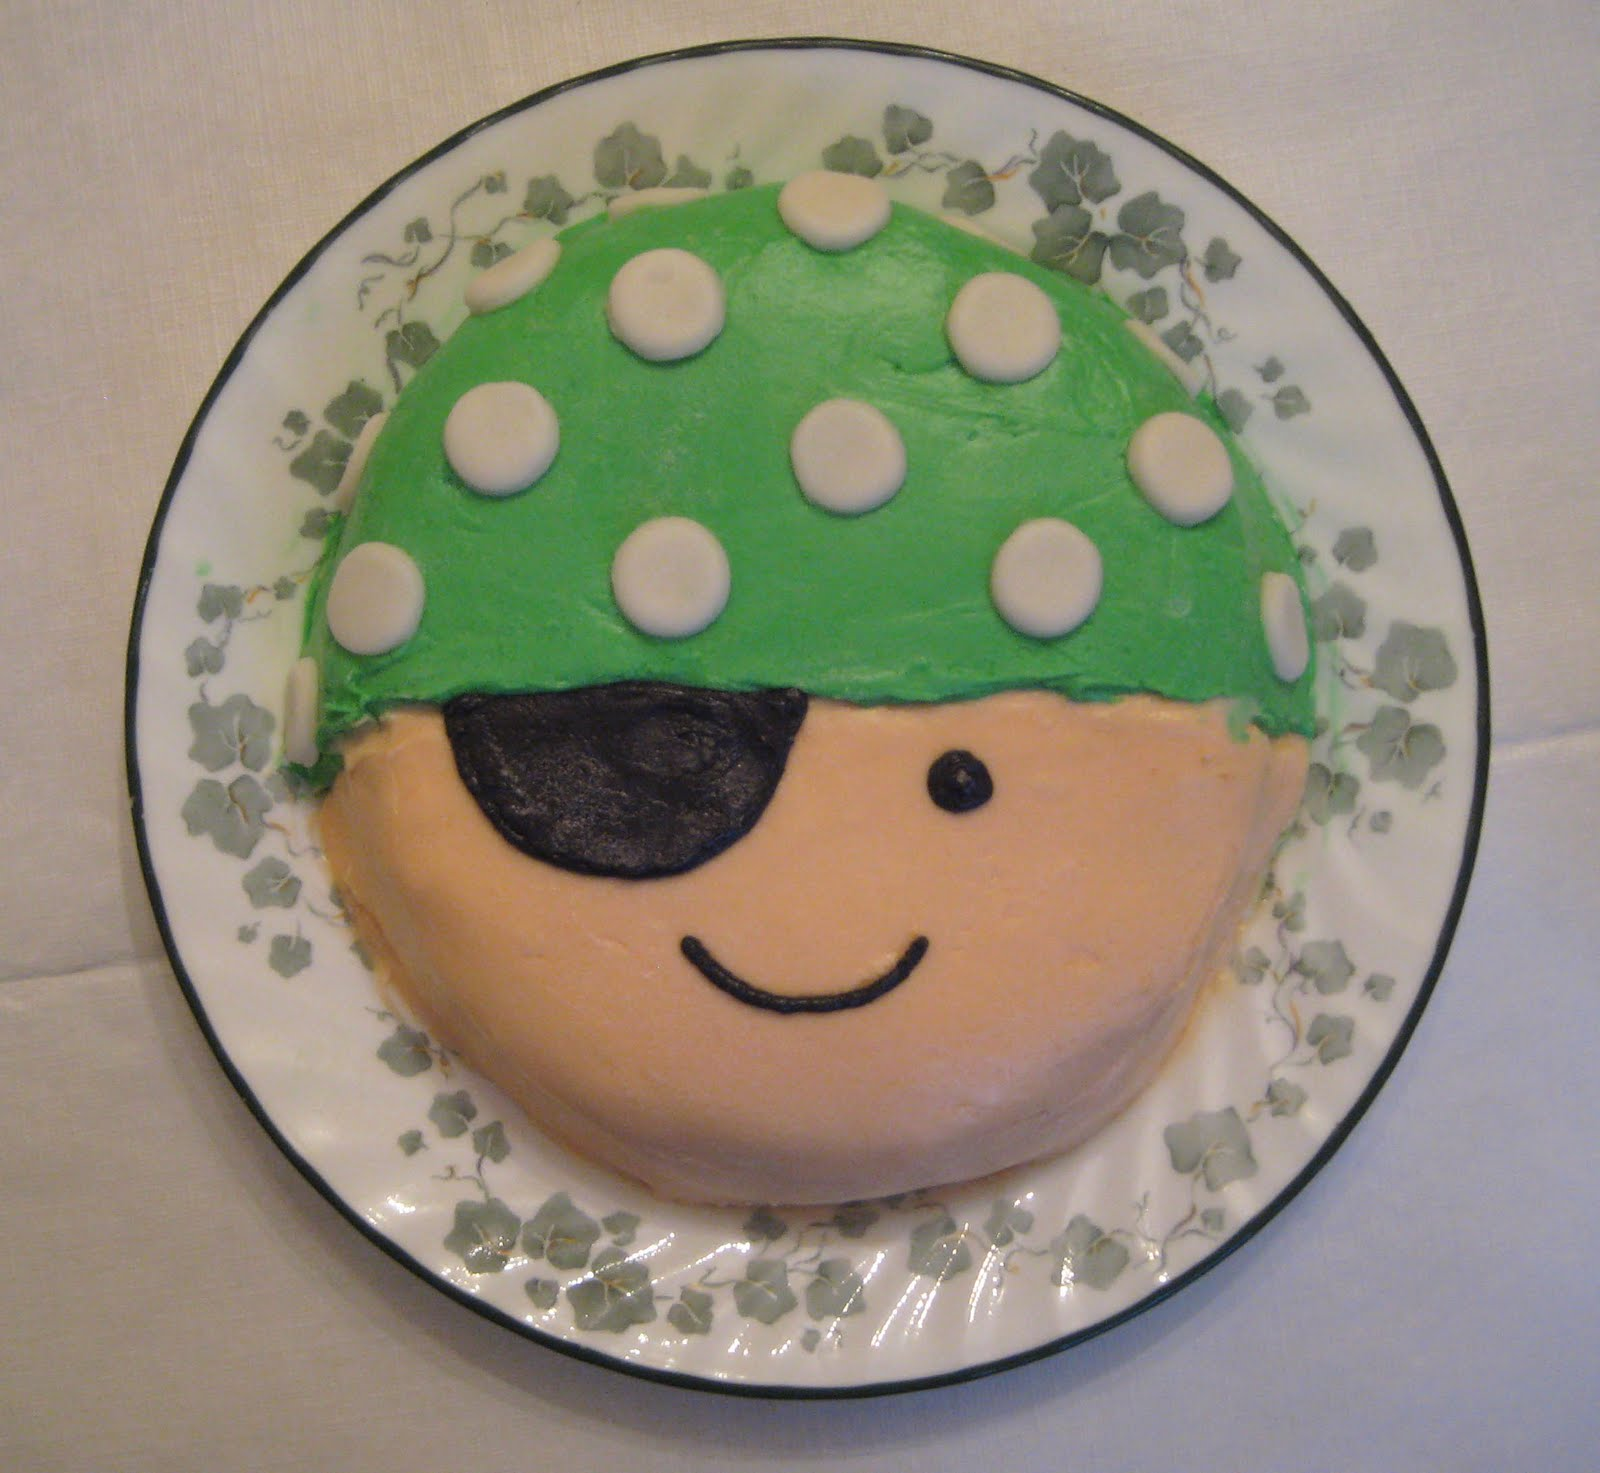 Pirate cake - photo#24